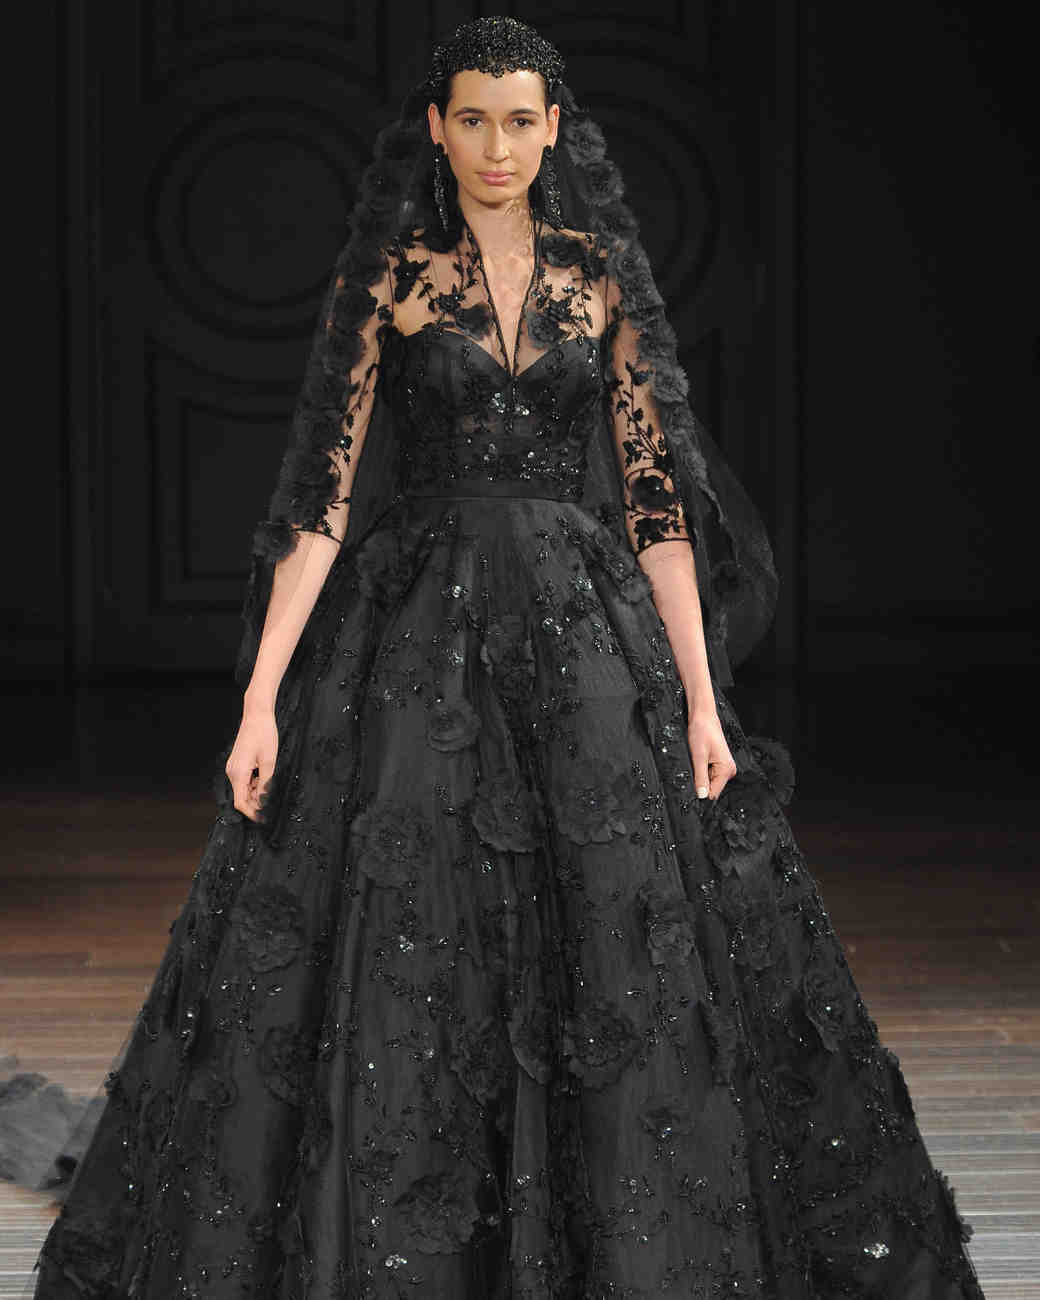 black wedding dresses wedding dresses black Naeem Khan embellished black wedding dress